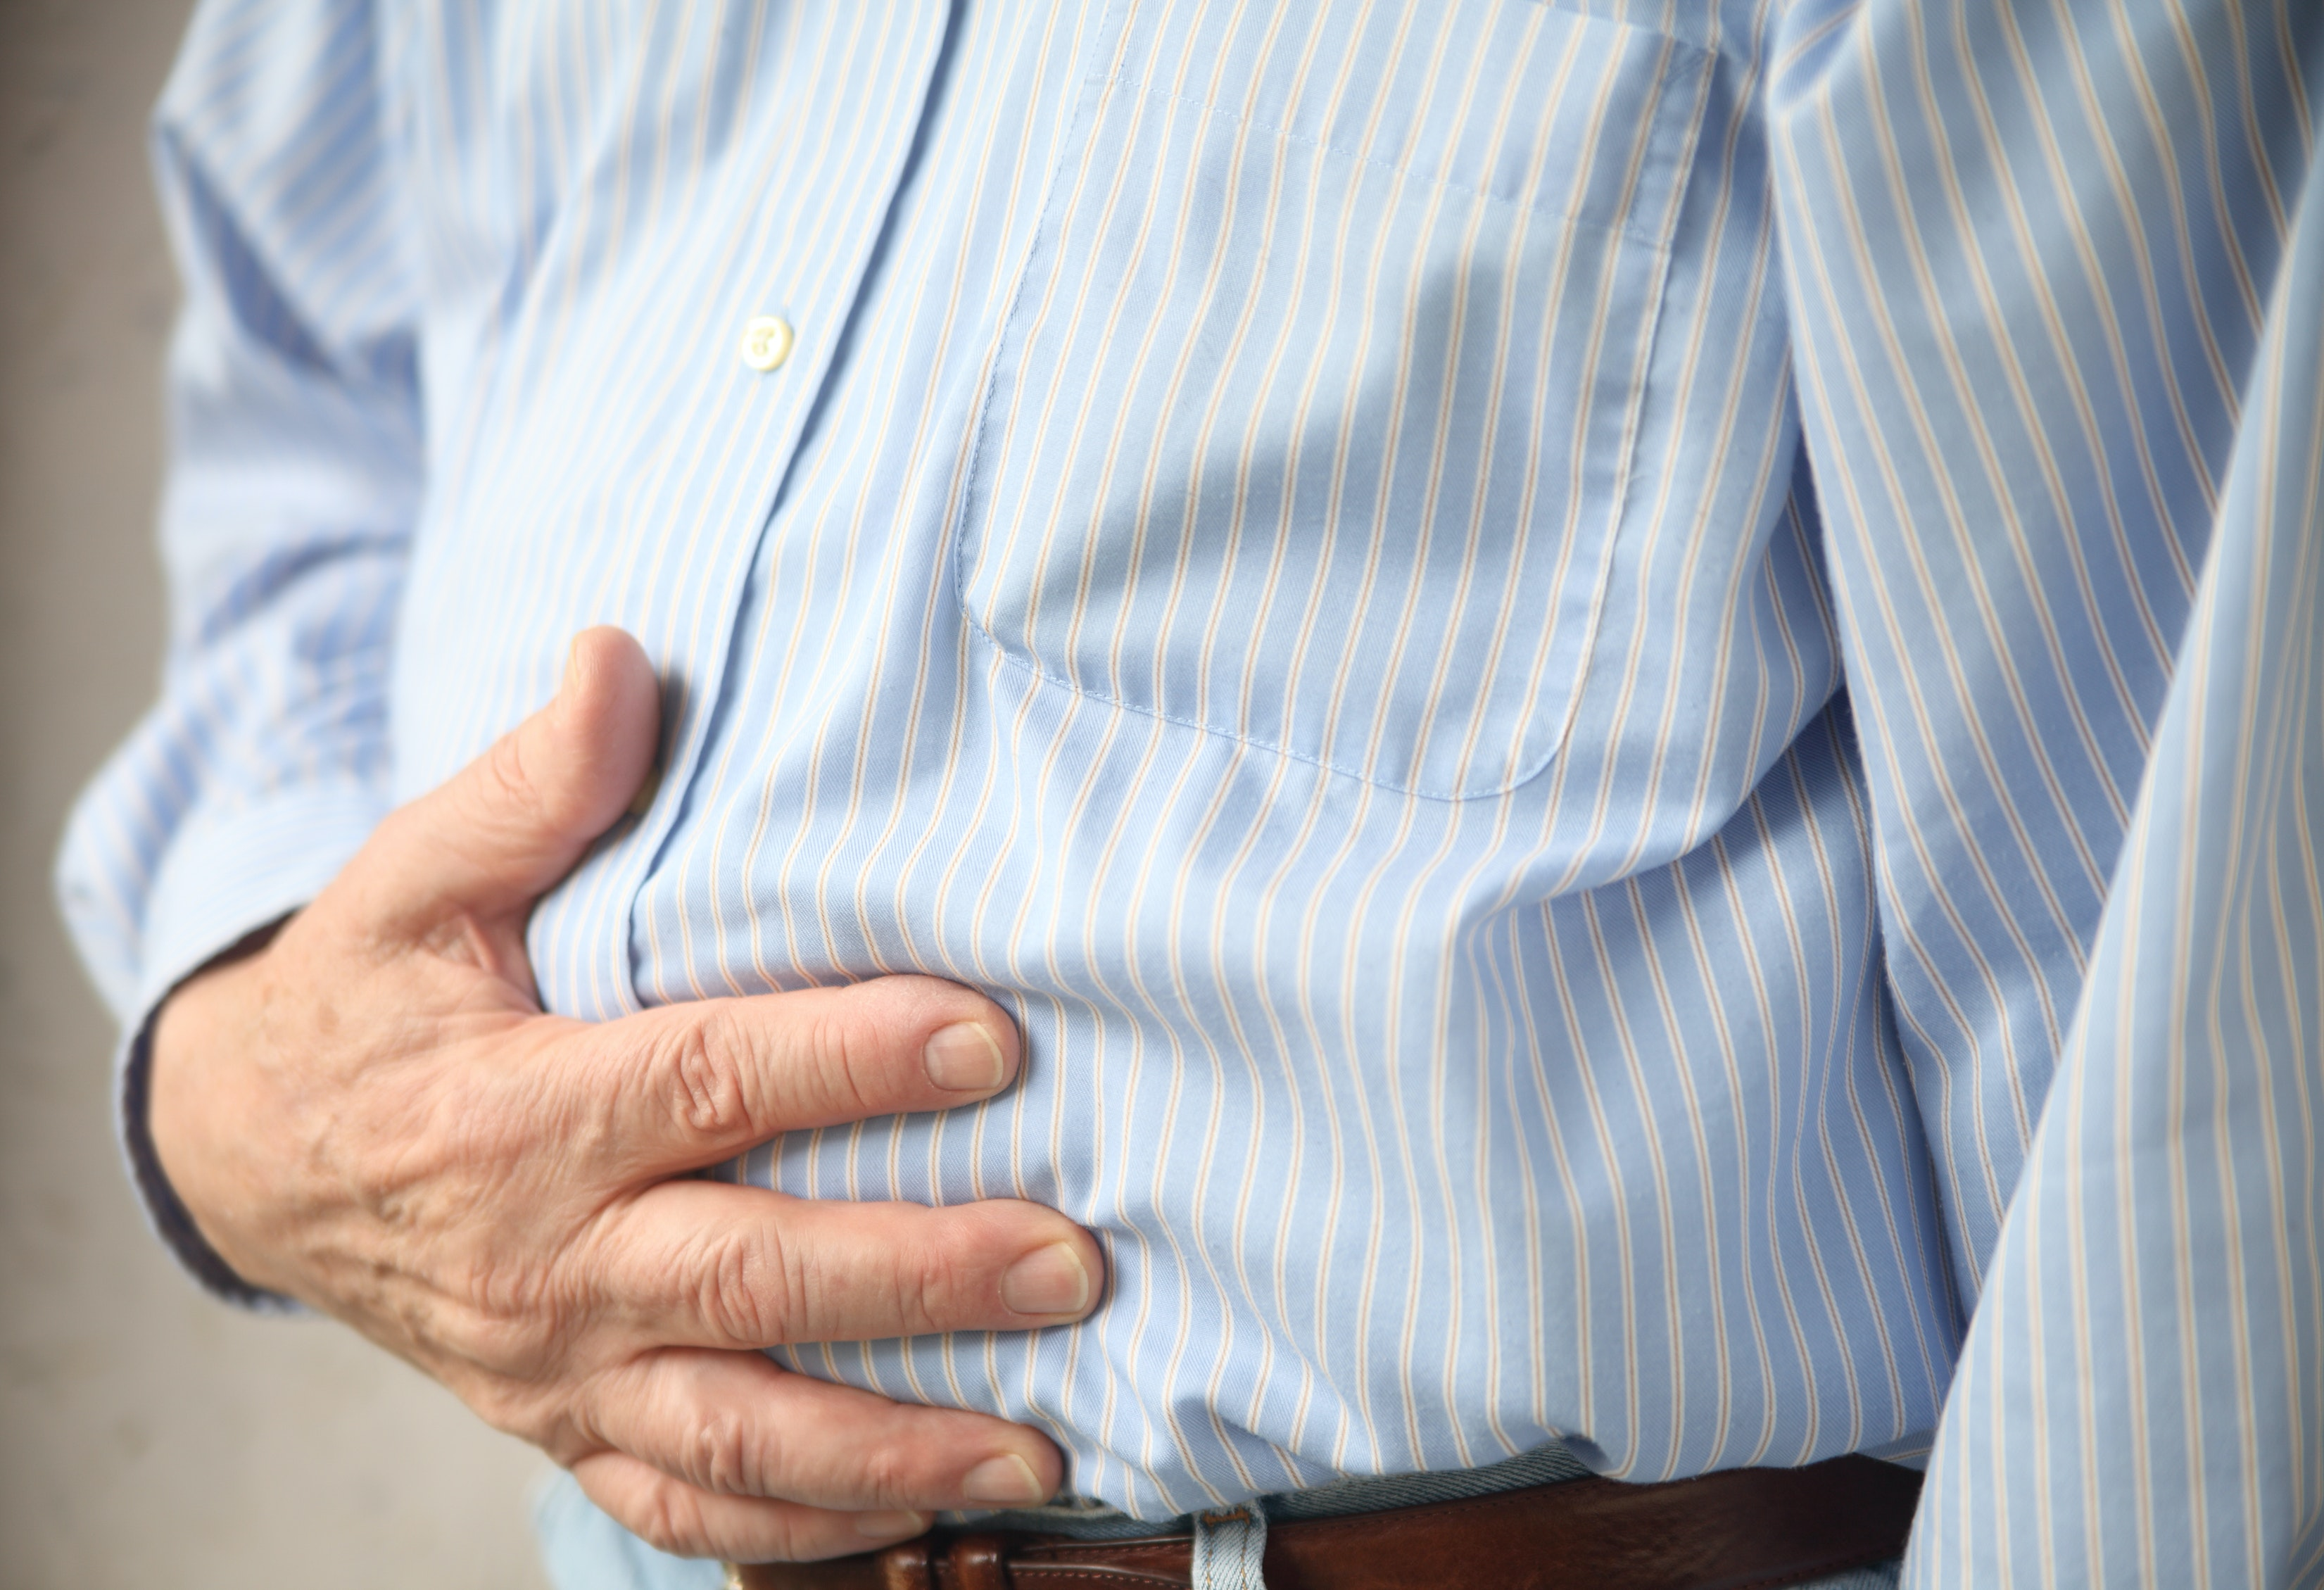 An image depicting a person suffering from stomach bloating symptoms